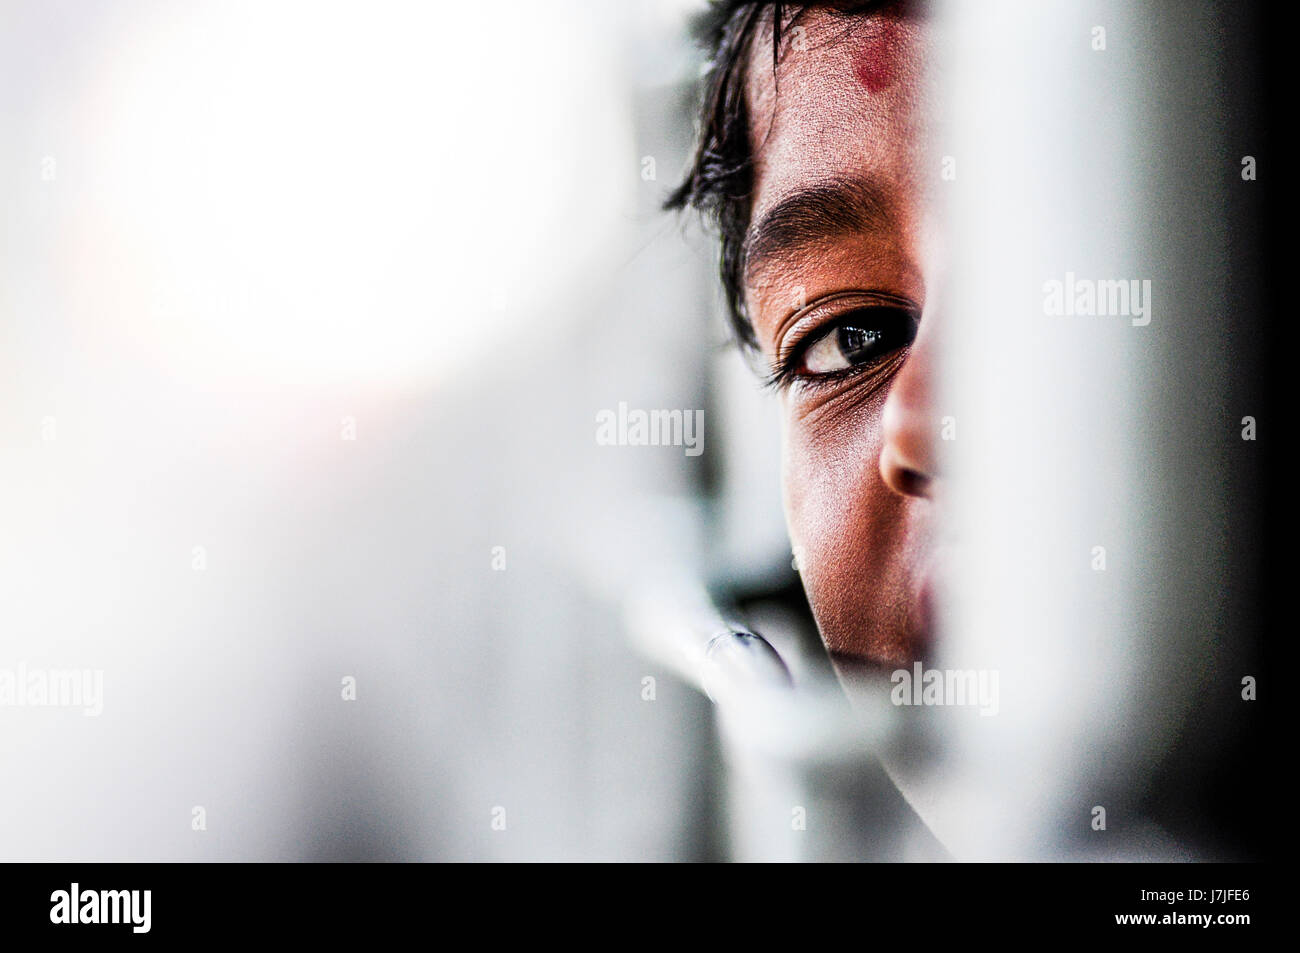 Pathankot, India, september 9, 2010: Indian kid playing hide and seek on a train in India. Stock Photo